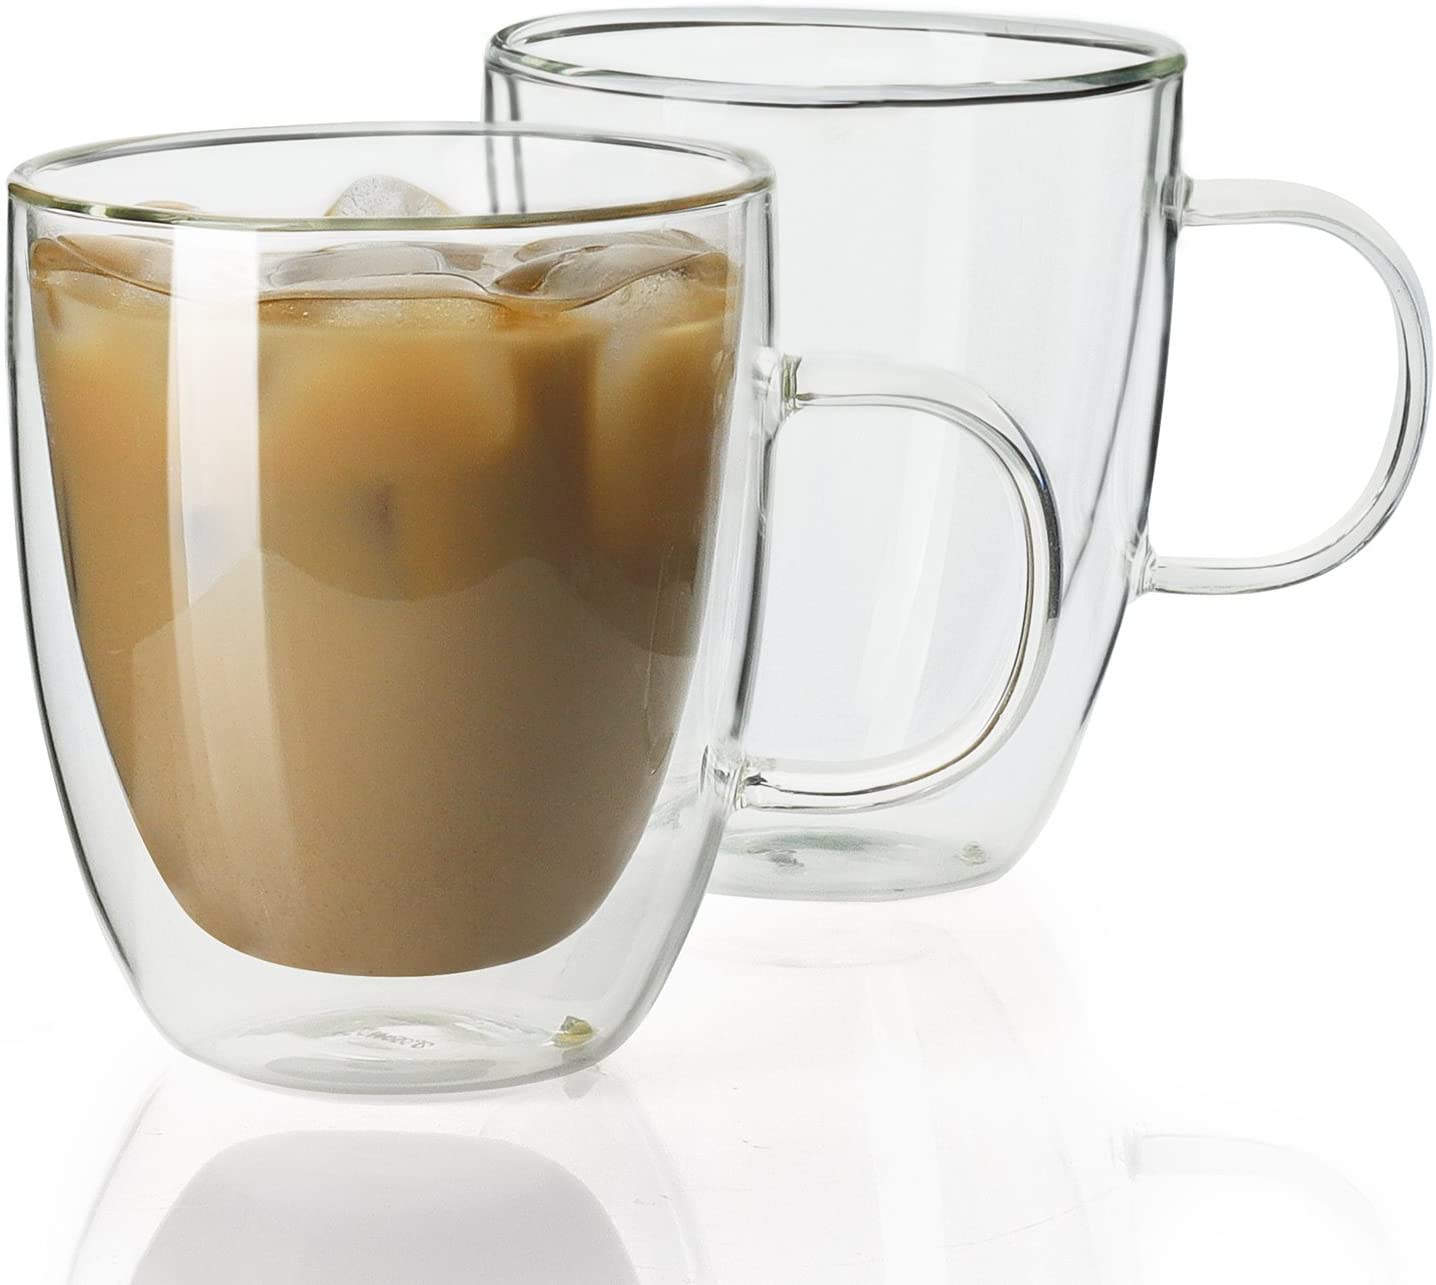 WEEKLY FINDS, Including this Sweese Glass Double Walled Insulated Coffee Mug Set of 2